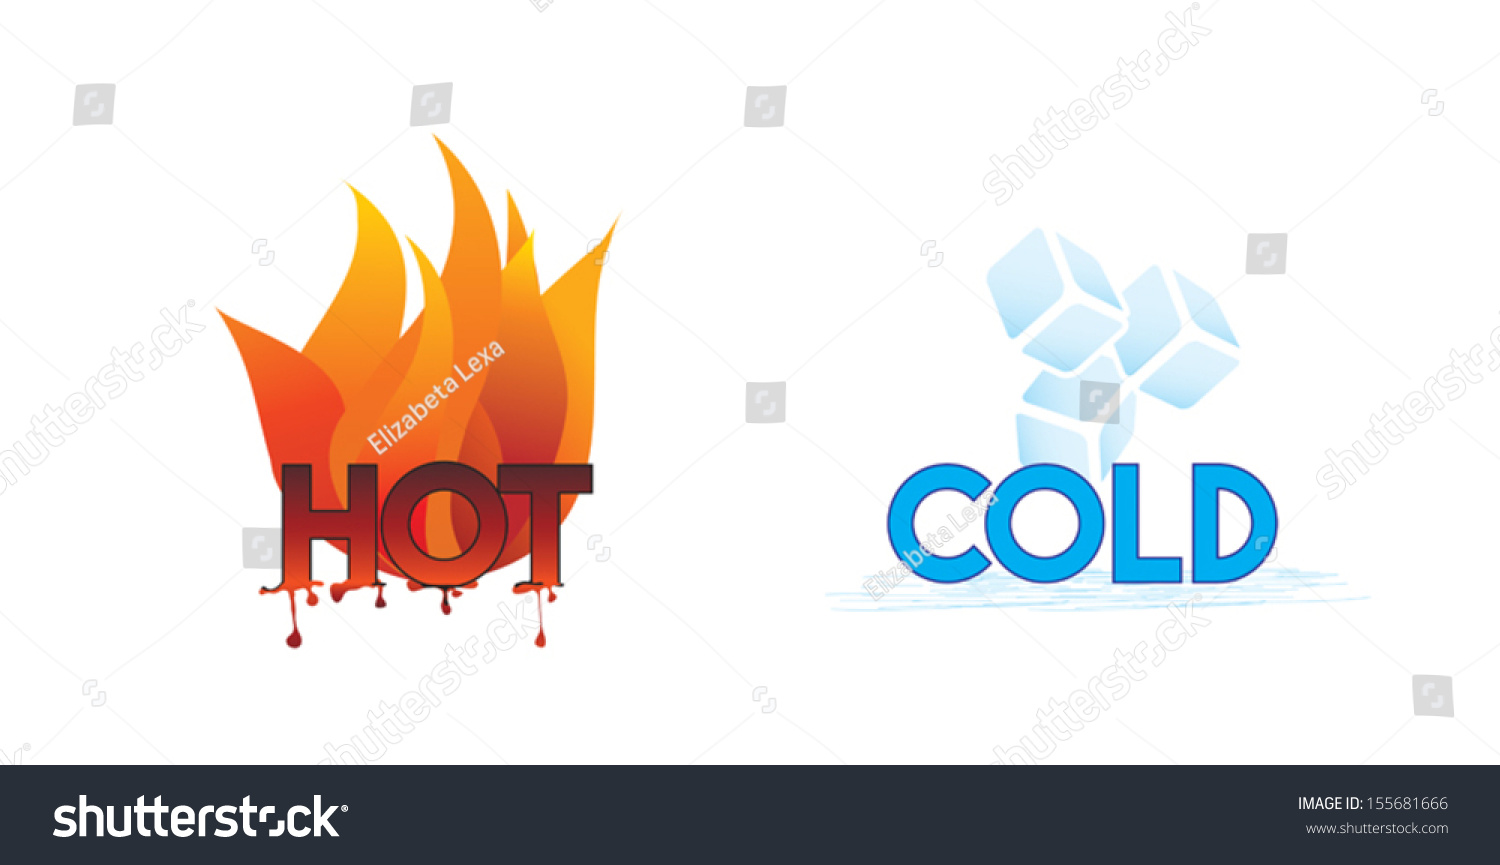 how to create cold fire